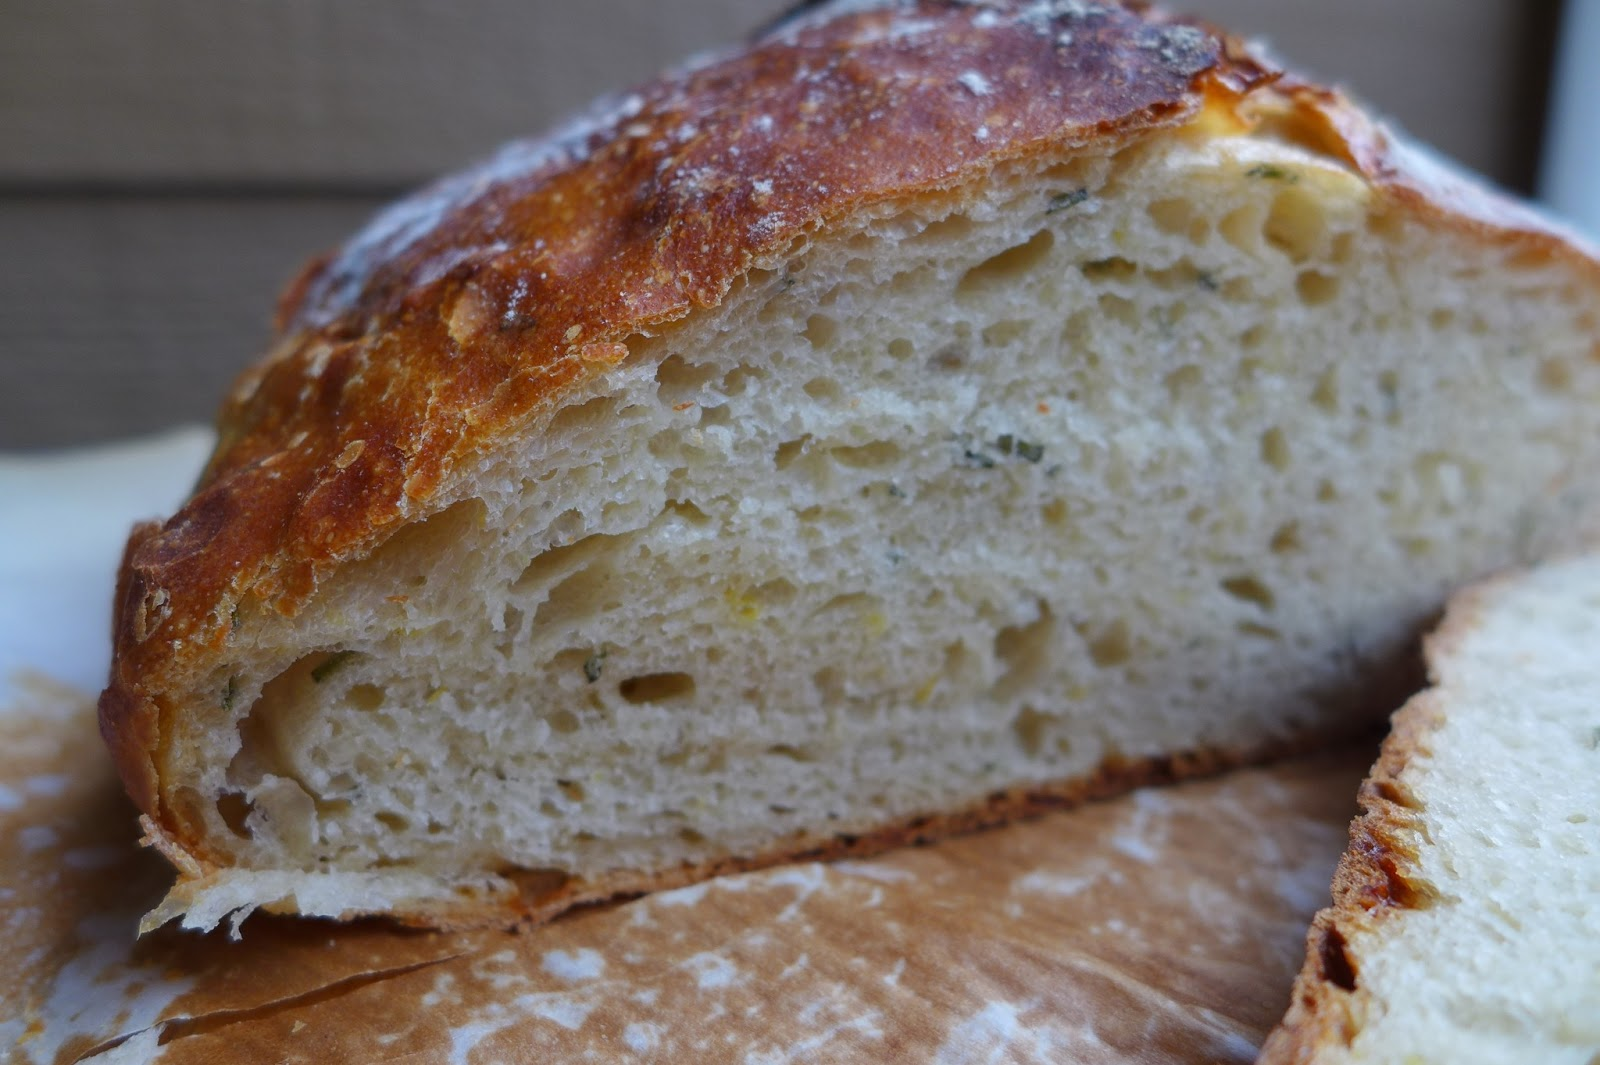 Dimples & Delights: Lemon Rosemary Gruyere Artisan Bread